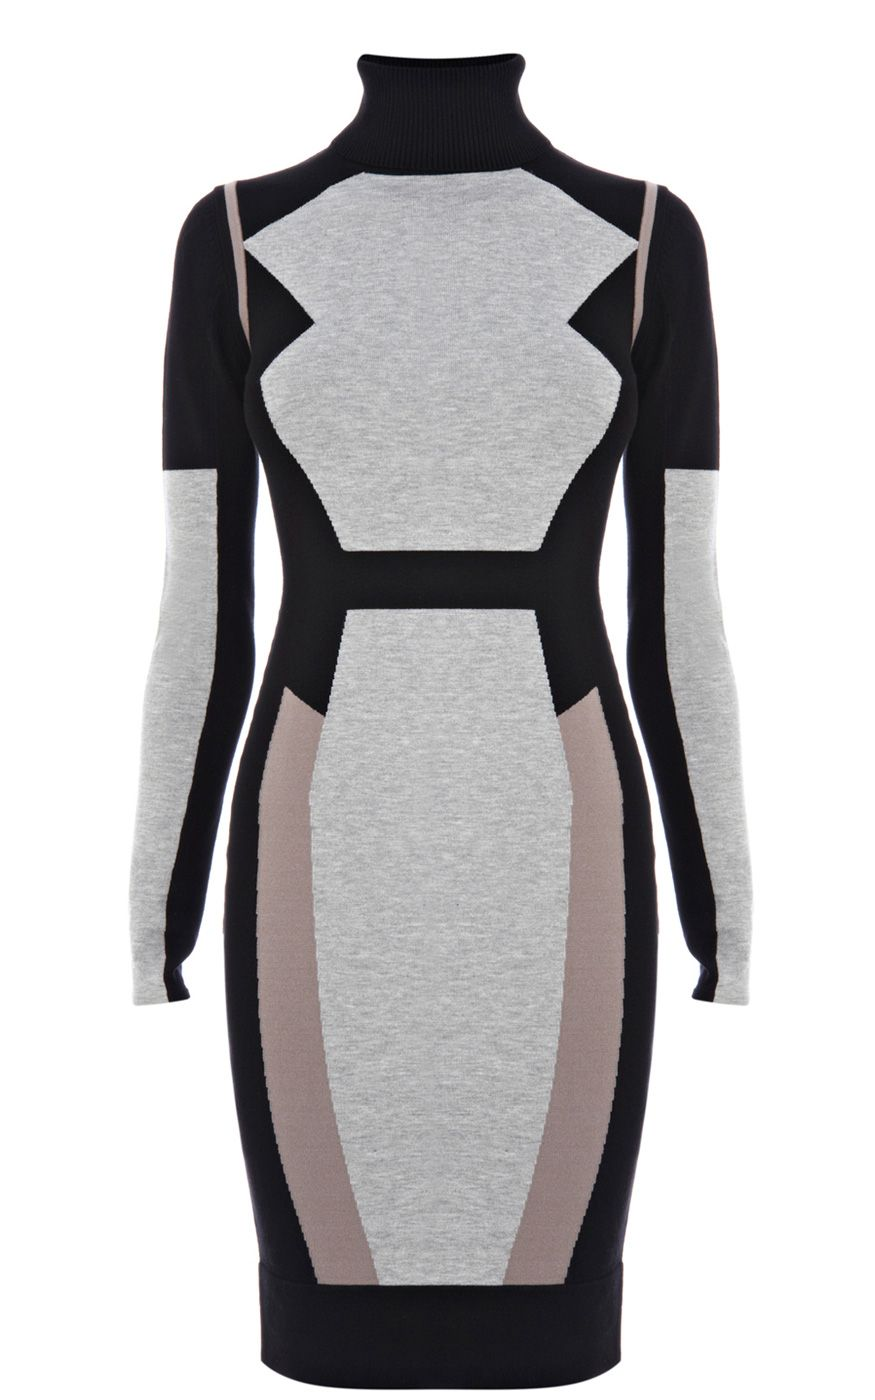 COLOURBLOCK SKINNY KNIT DRESS  Long sleeved colour blocked knit dress with Karen Millen branded metal zip at back neck Make this long-sleeved knit dress the focal point of your outfit. The form-fitting design looks great teamed with tights and boots for an easy autumnal look.